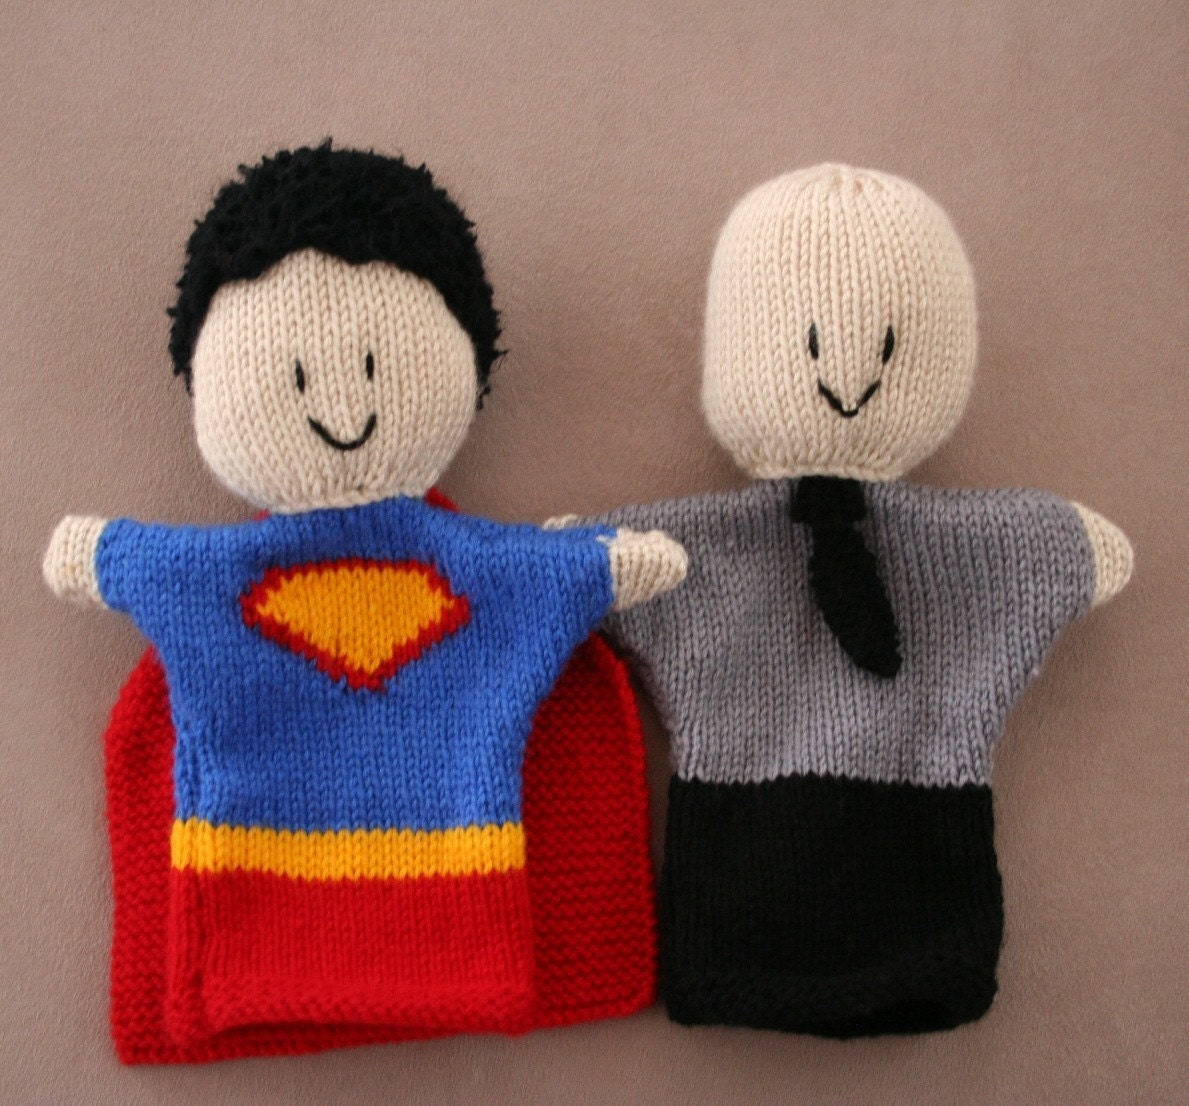 Puppet Gloves Knitting Pattern : Glove Puppet Knitting Pattern Superman and Lex by kooklacreations